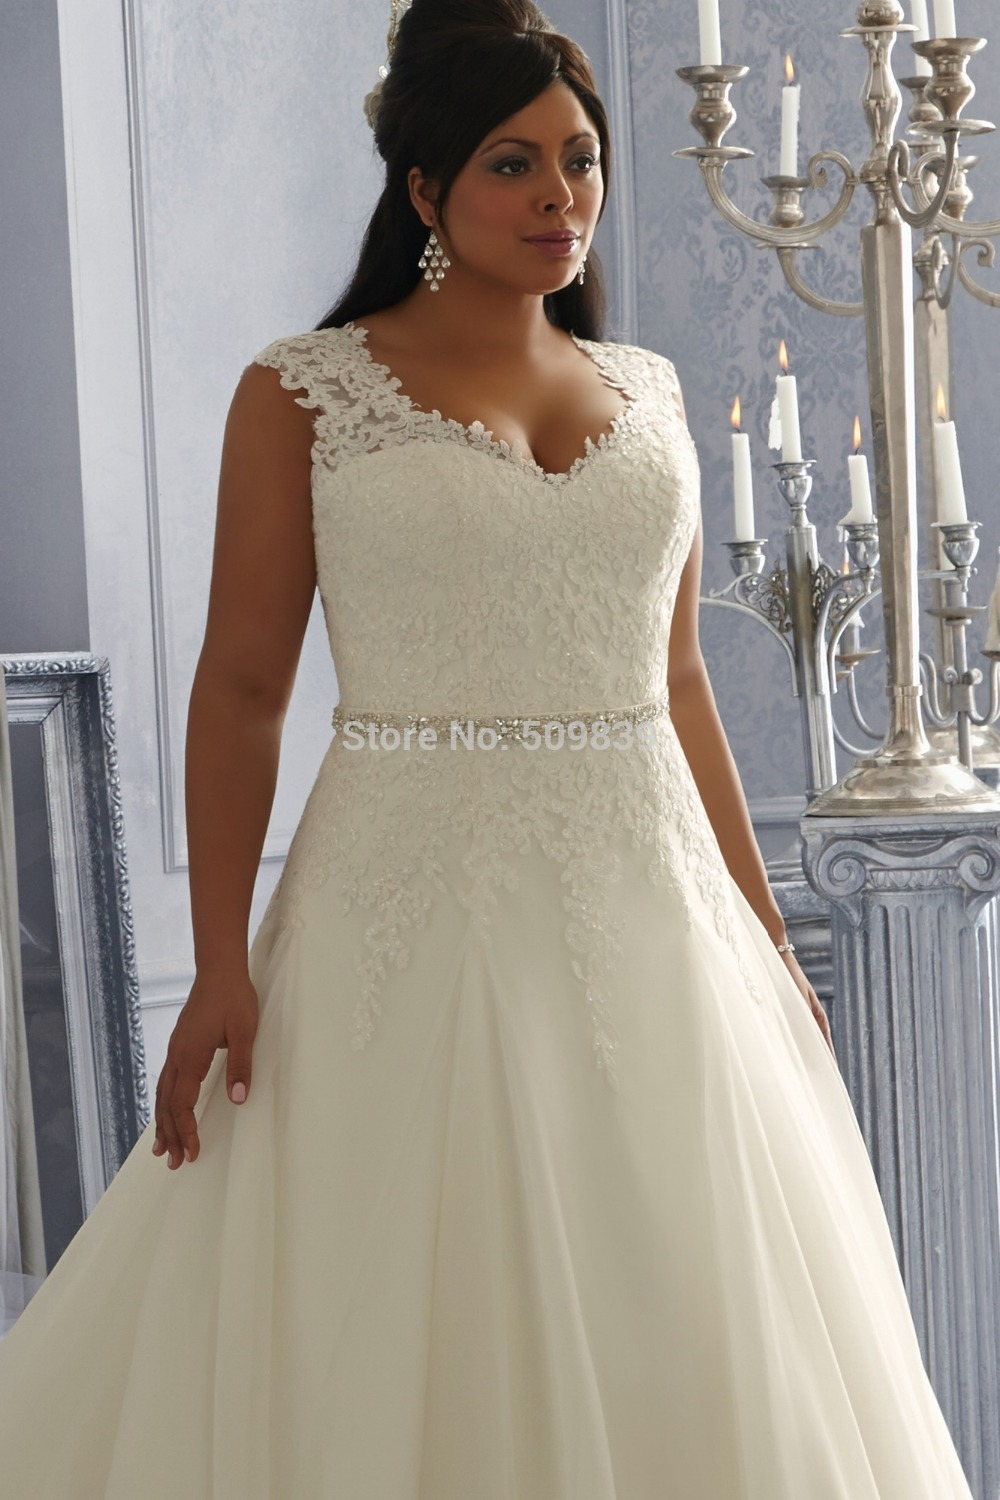 Red and white plus size wedding dress